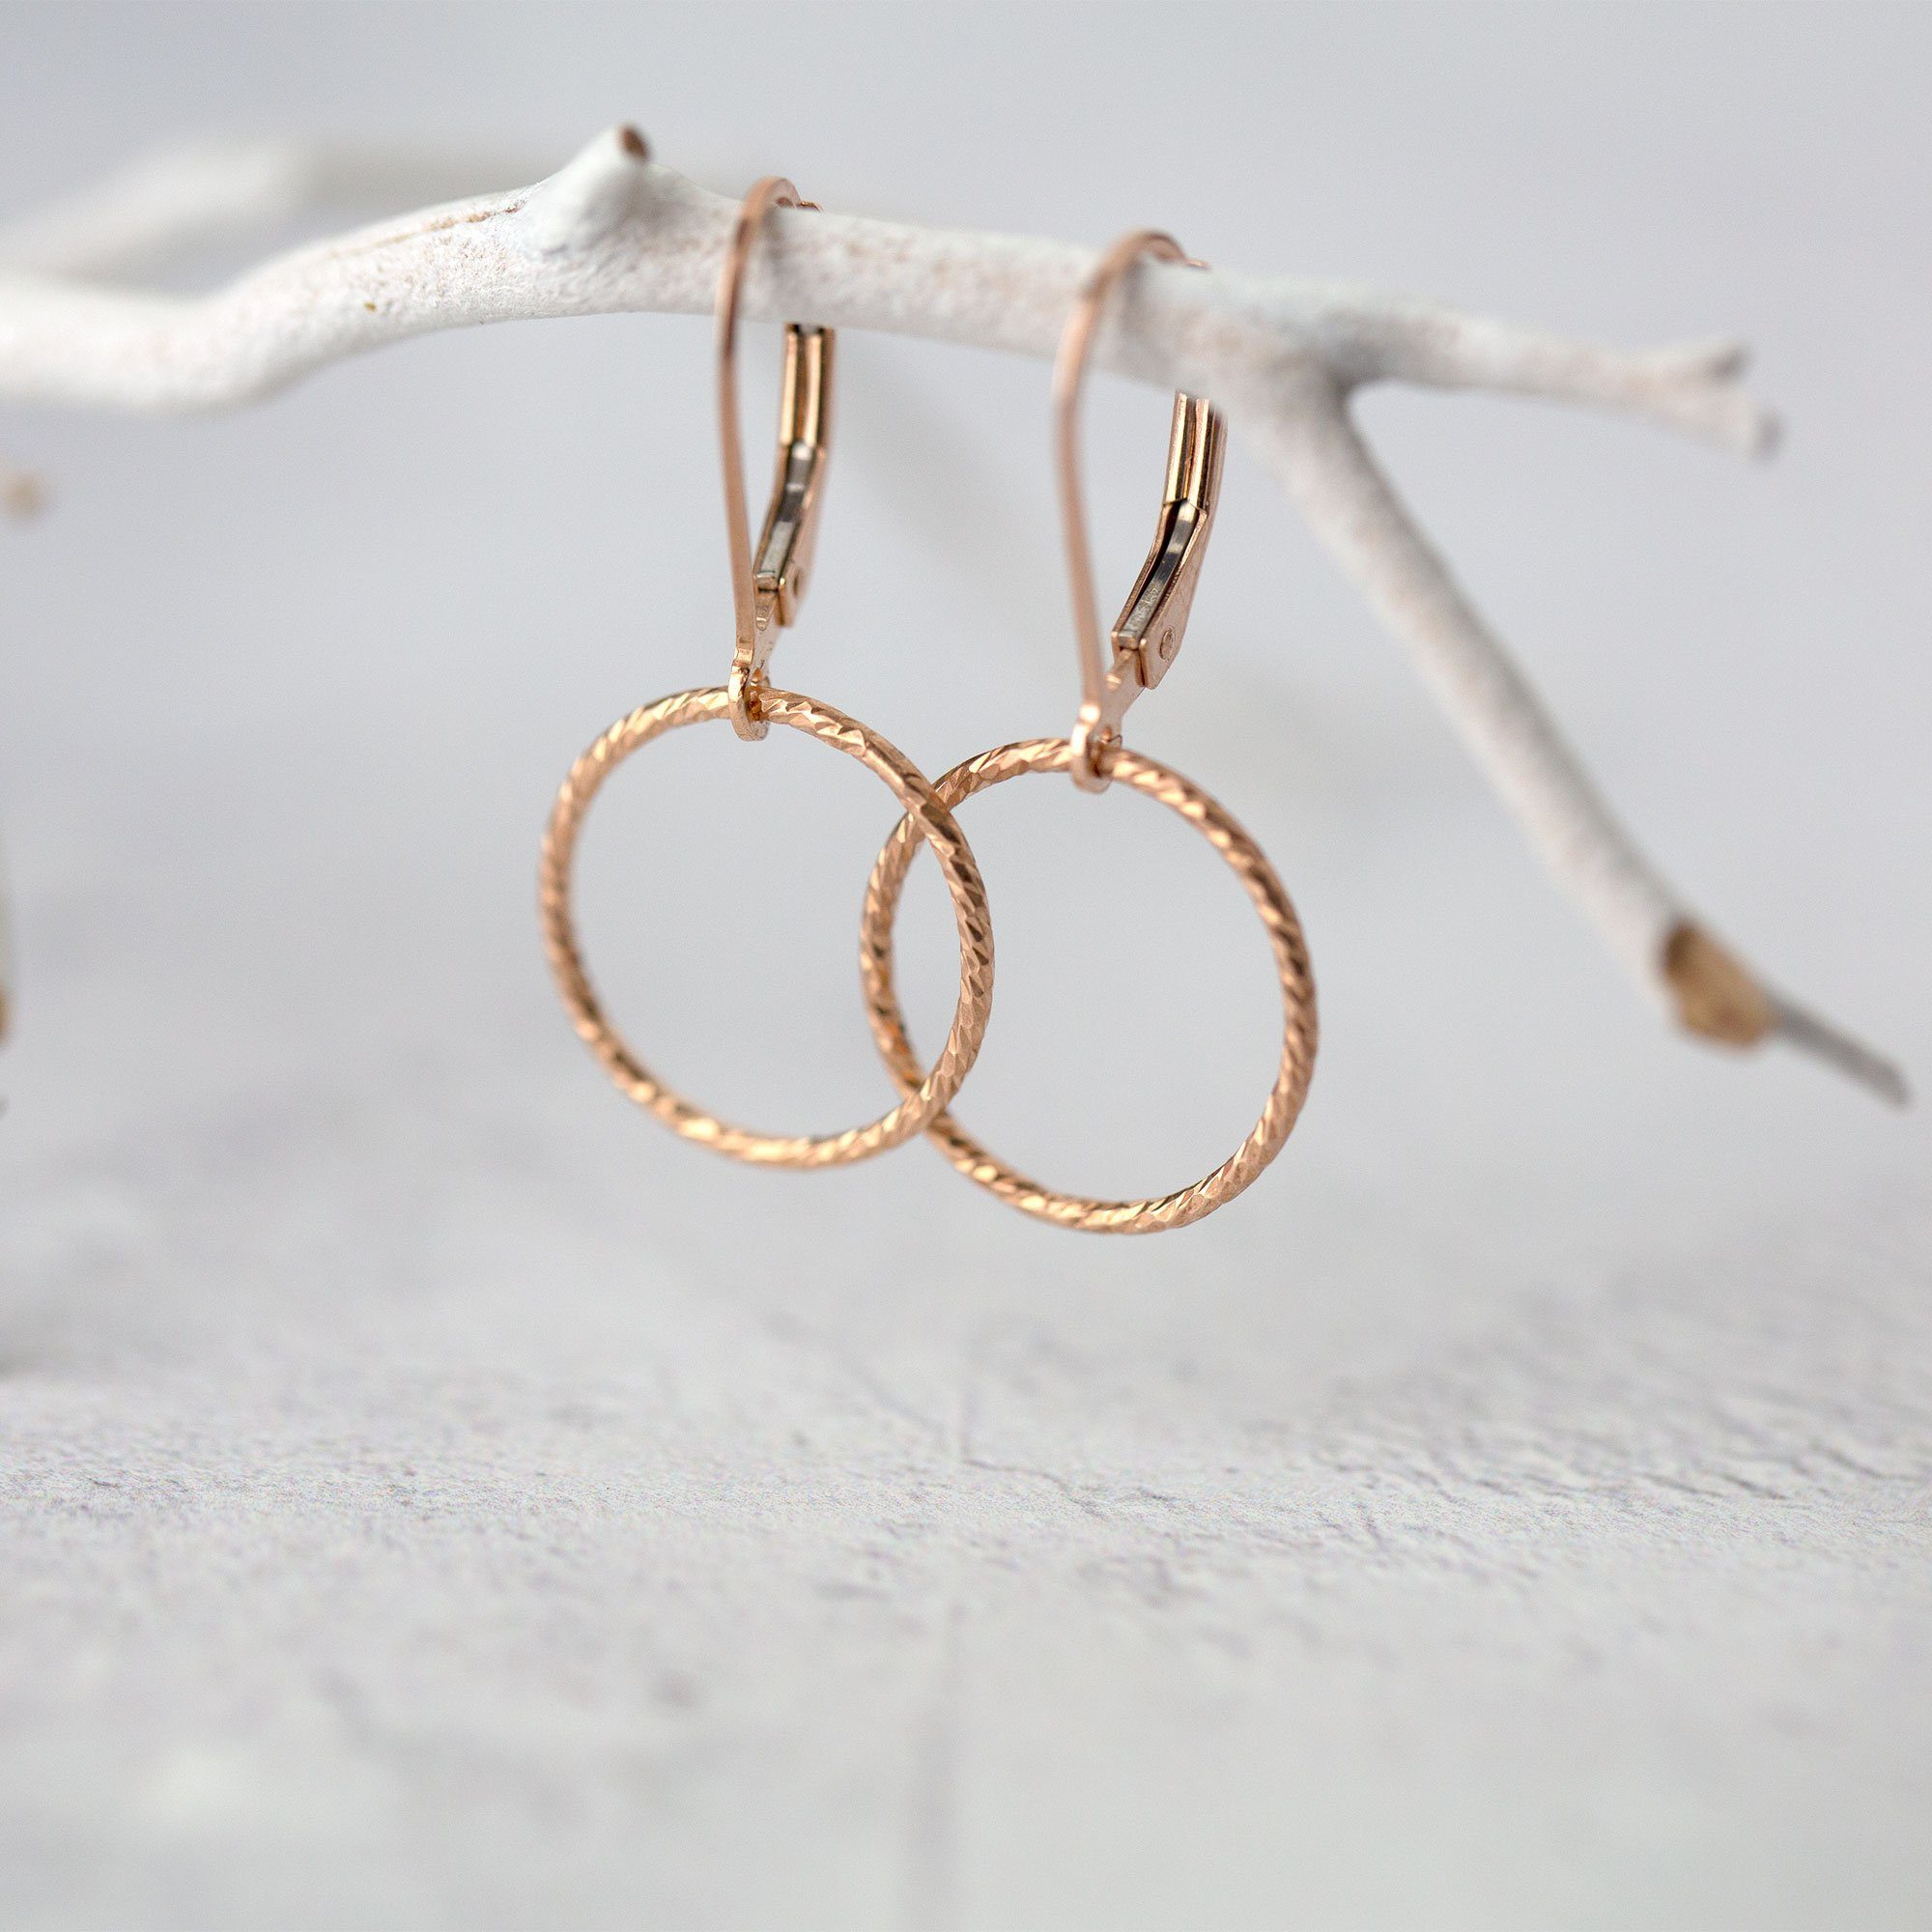 Sparkle Rose Gold Circle Lever-back Earrings - Handmade Jewelry by Burnish